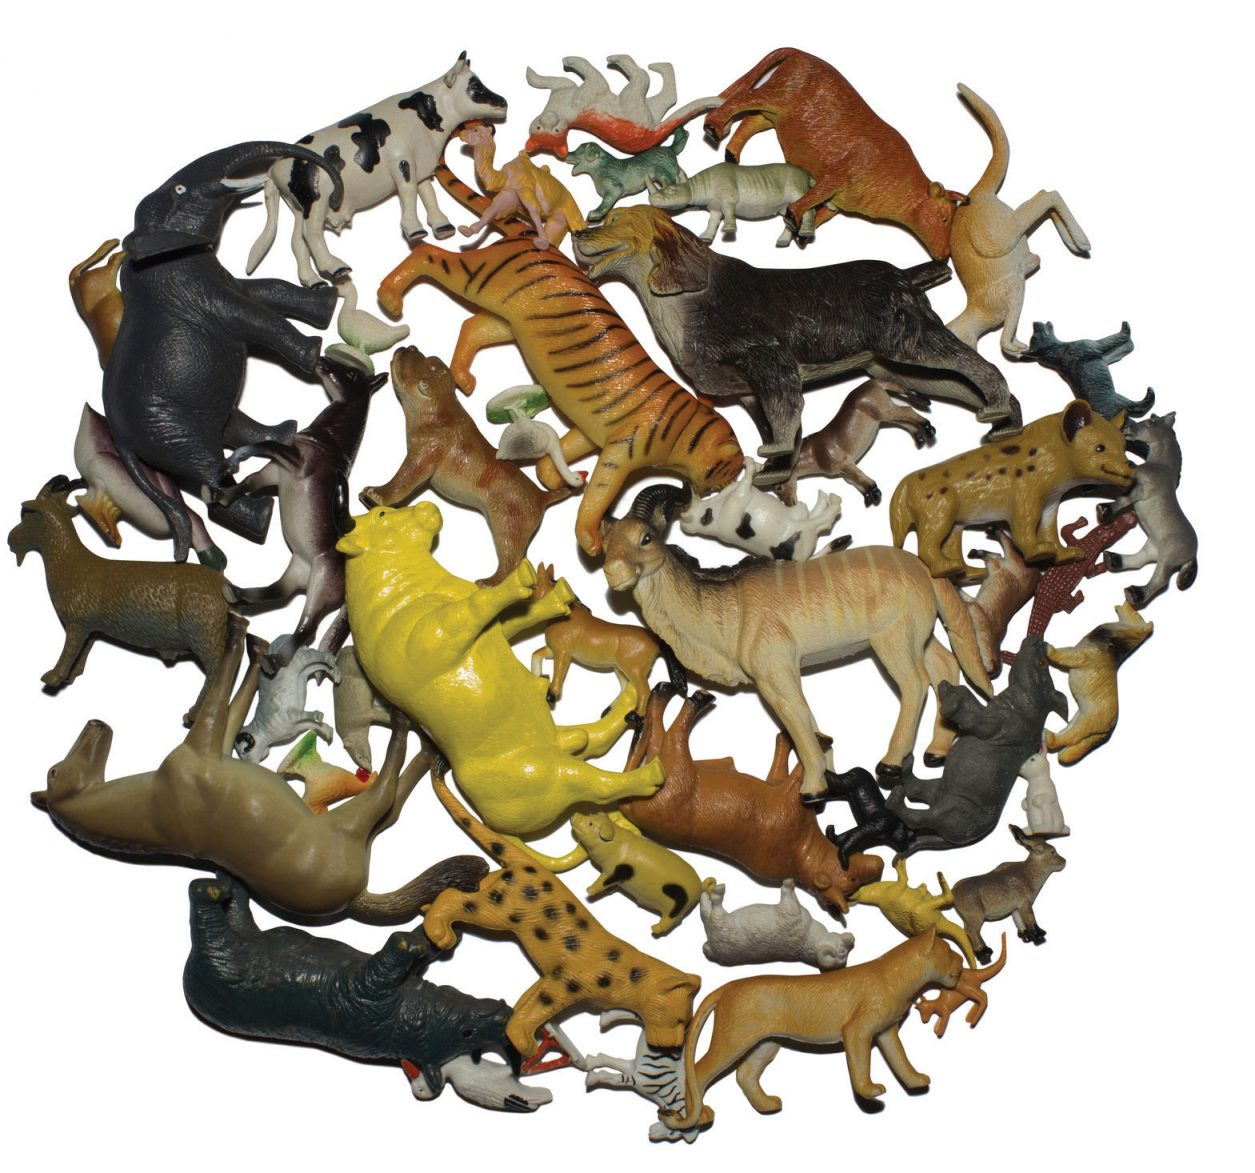 Plastic toy animals in a pile